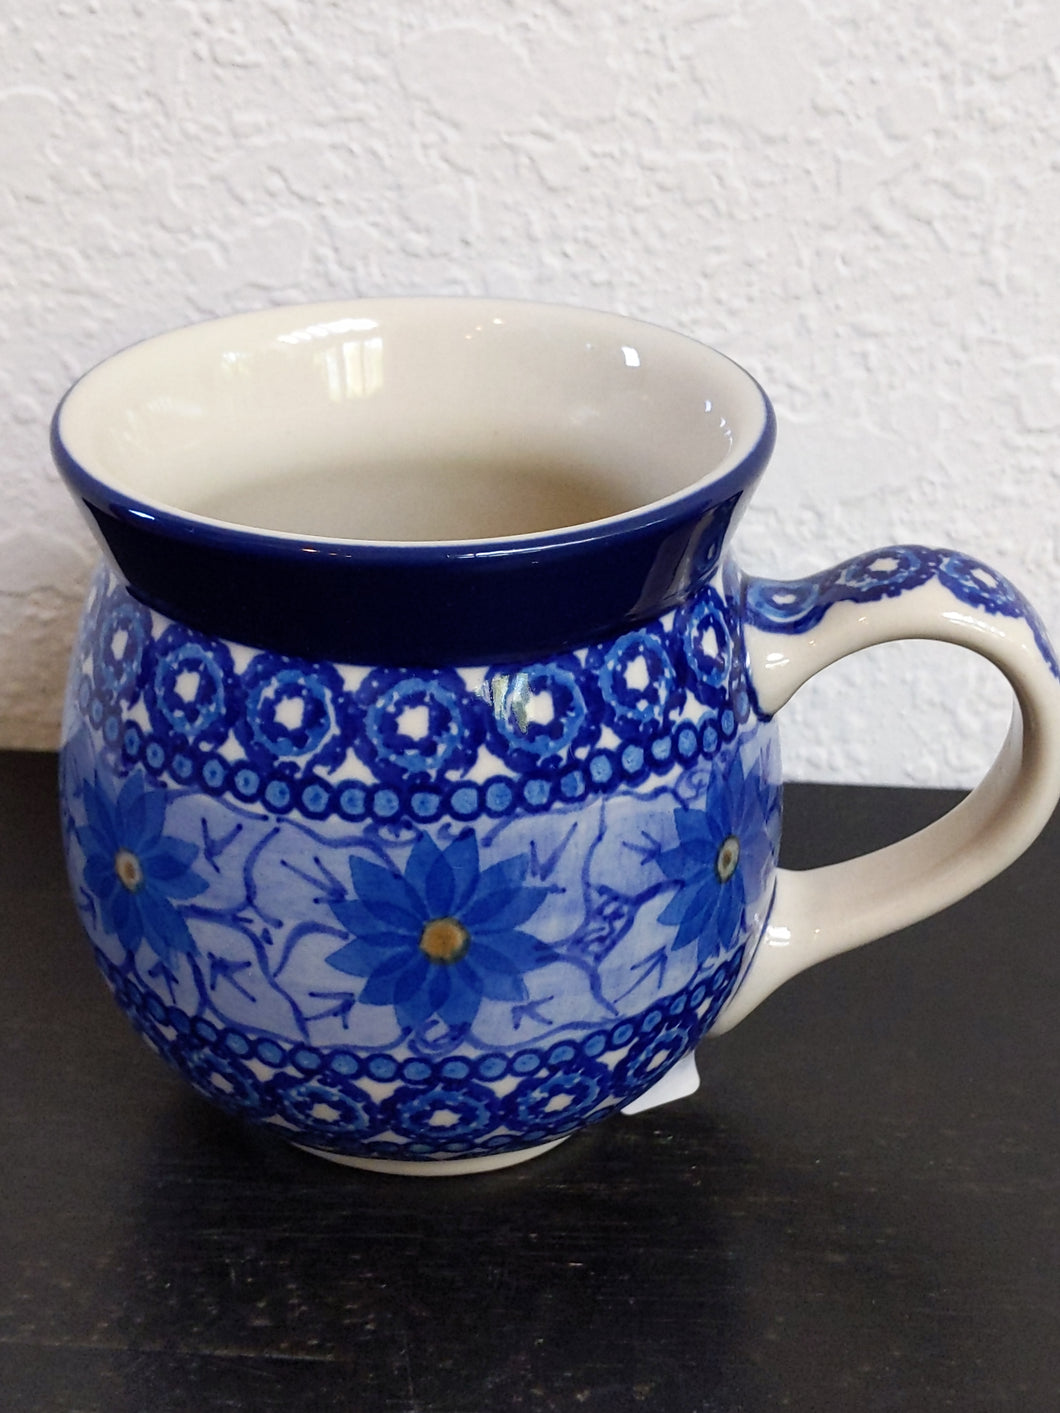 16oz Blue flower mug